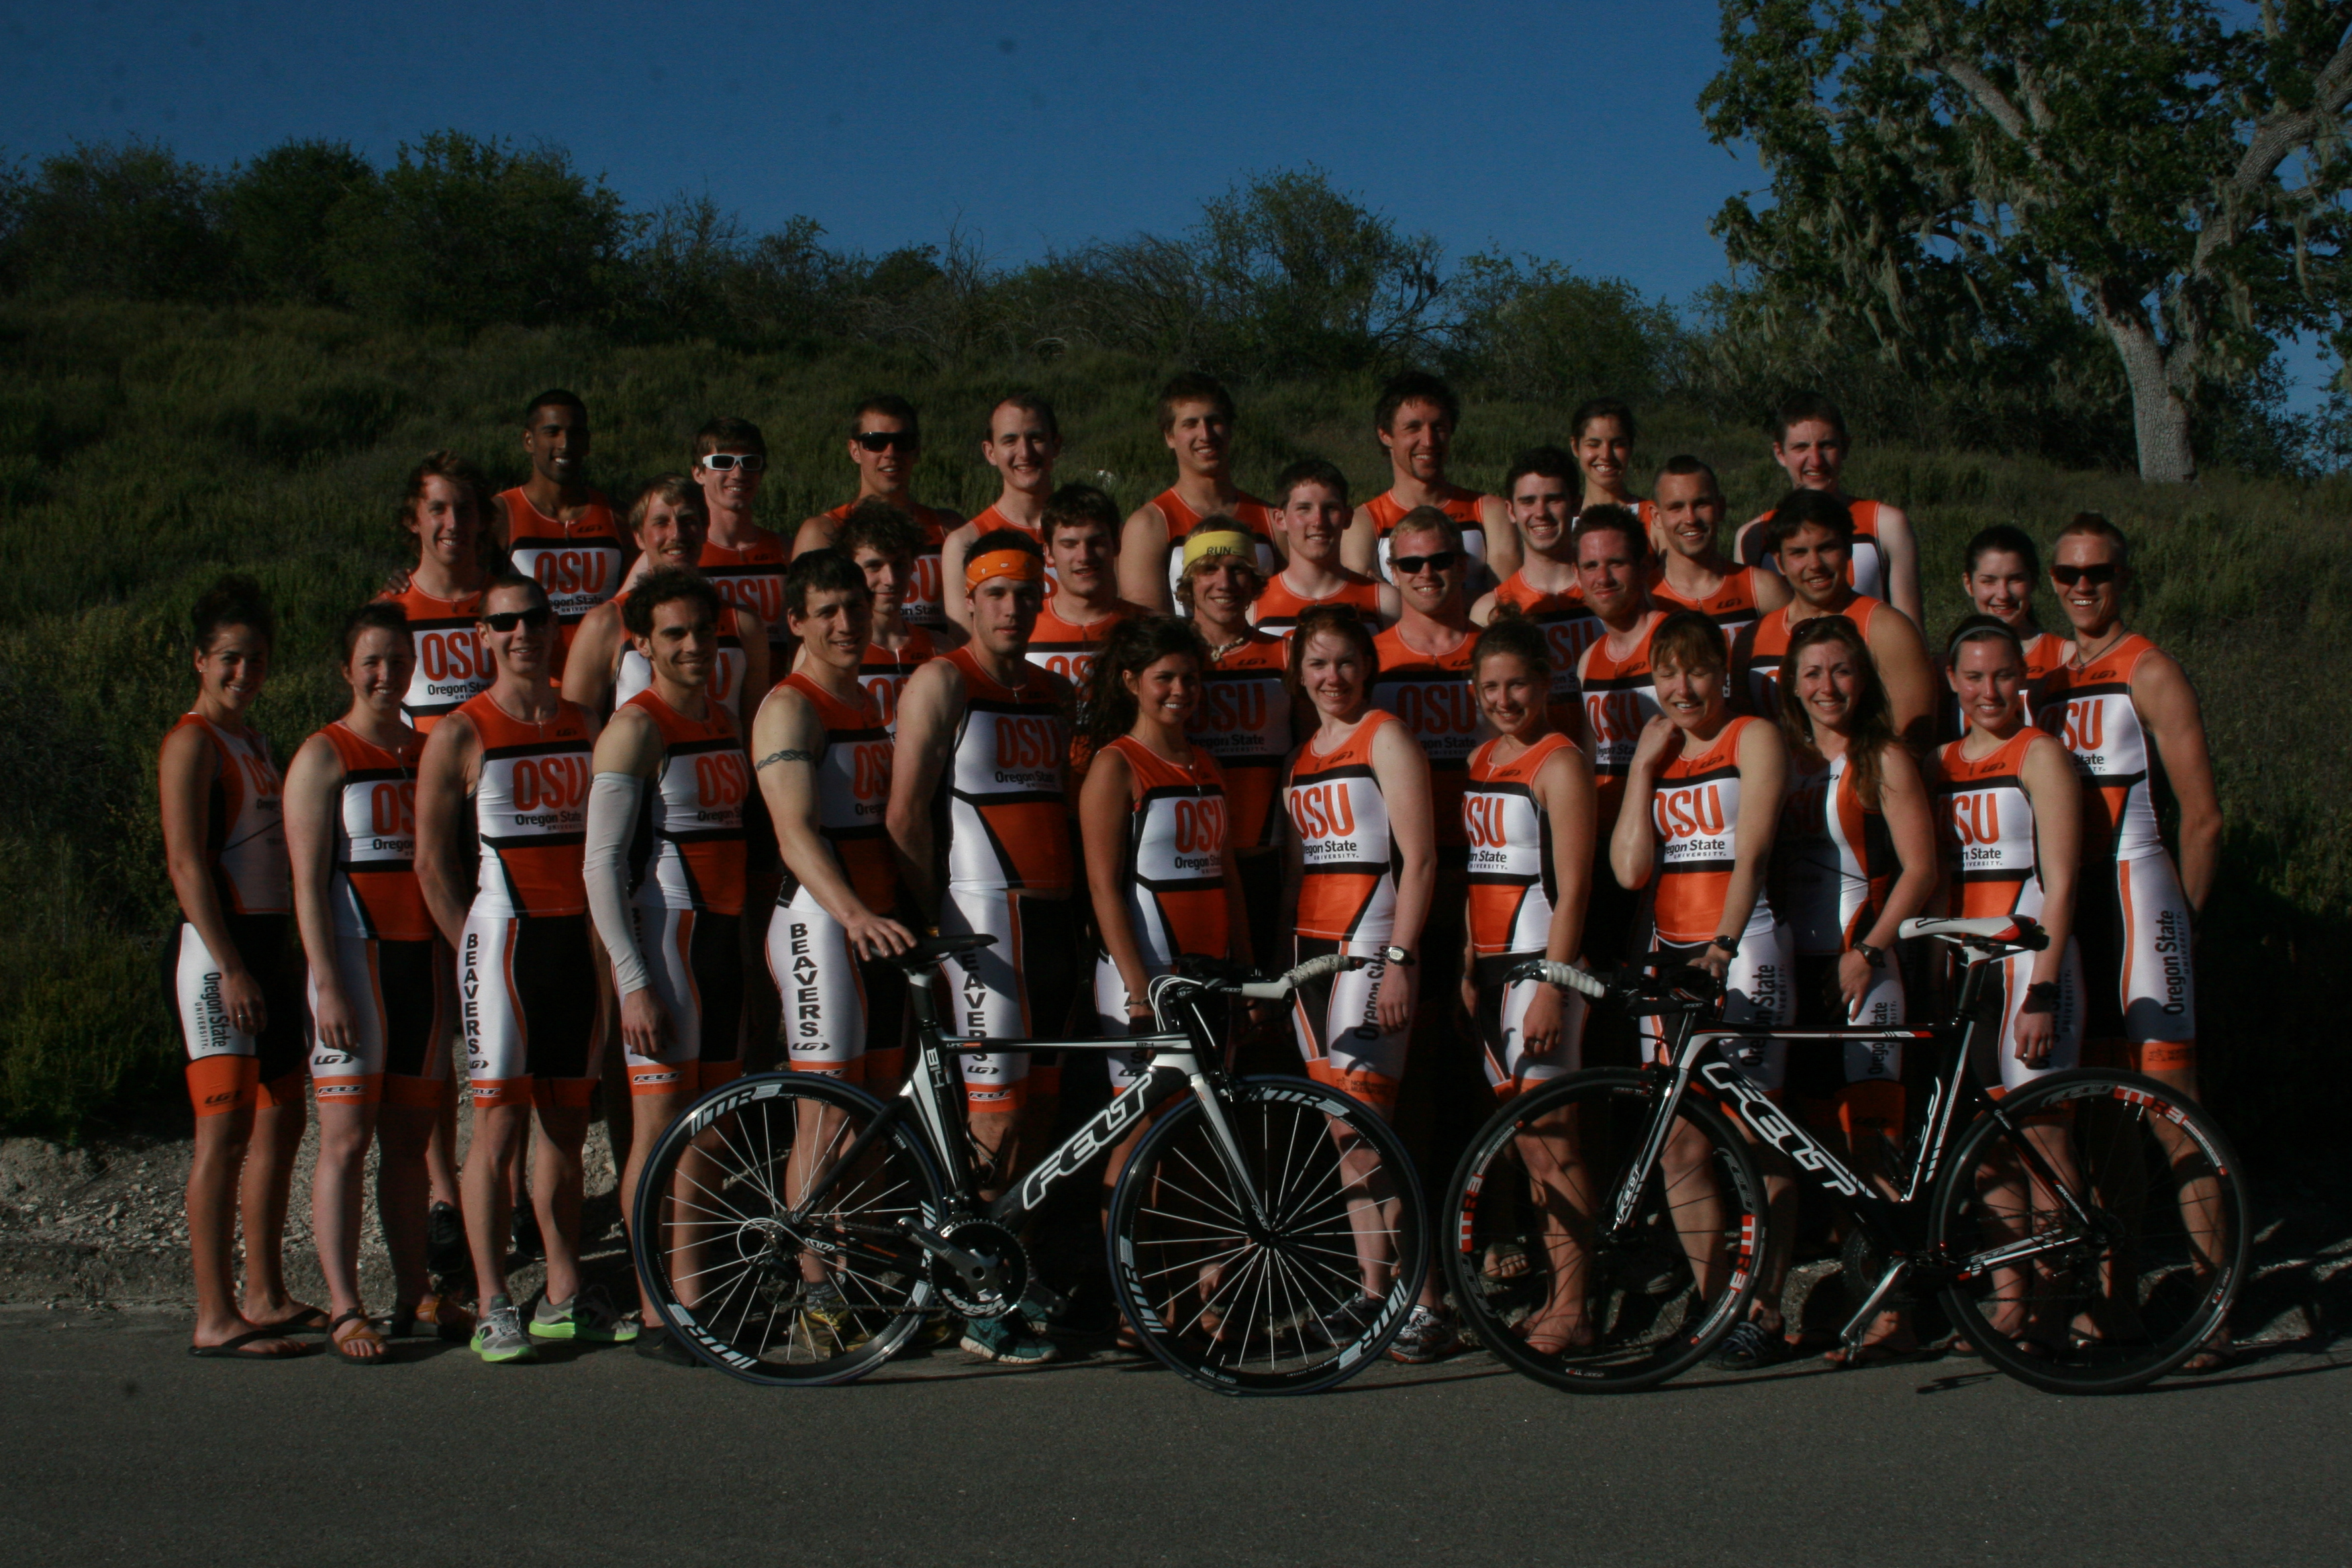 OSU Triathlon Club